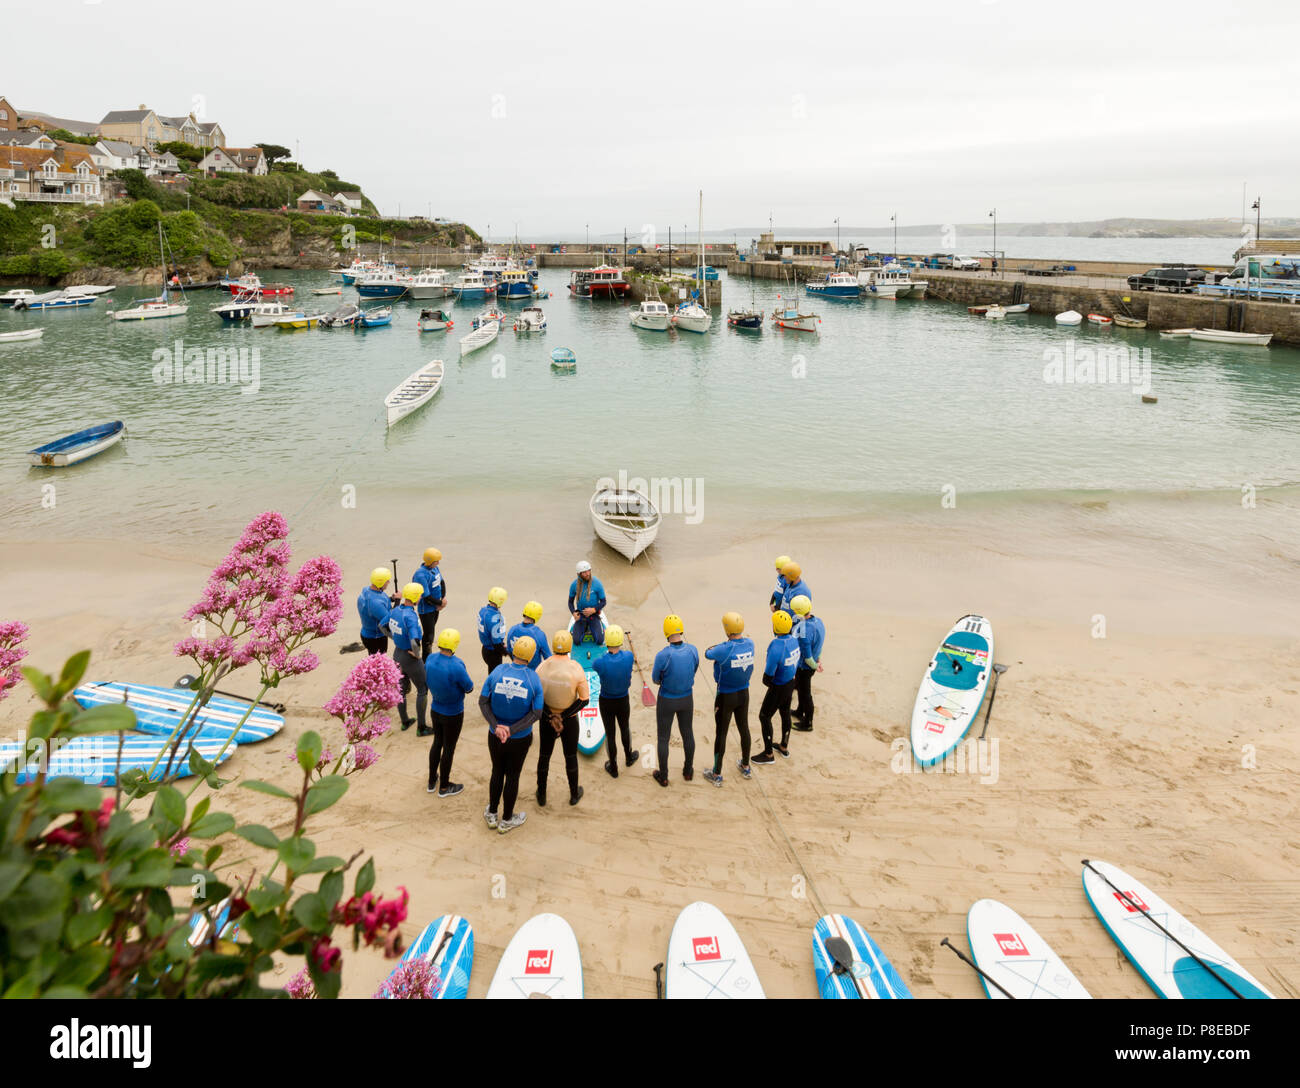 Newquay Cornwall June 2018. Board paddle surfer lessons at Newquay Harbour, Cornwall. Unsharpened. - Stock Image